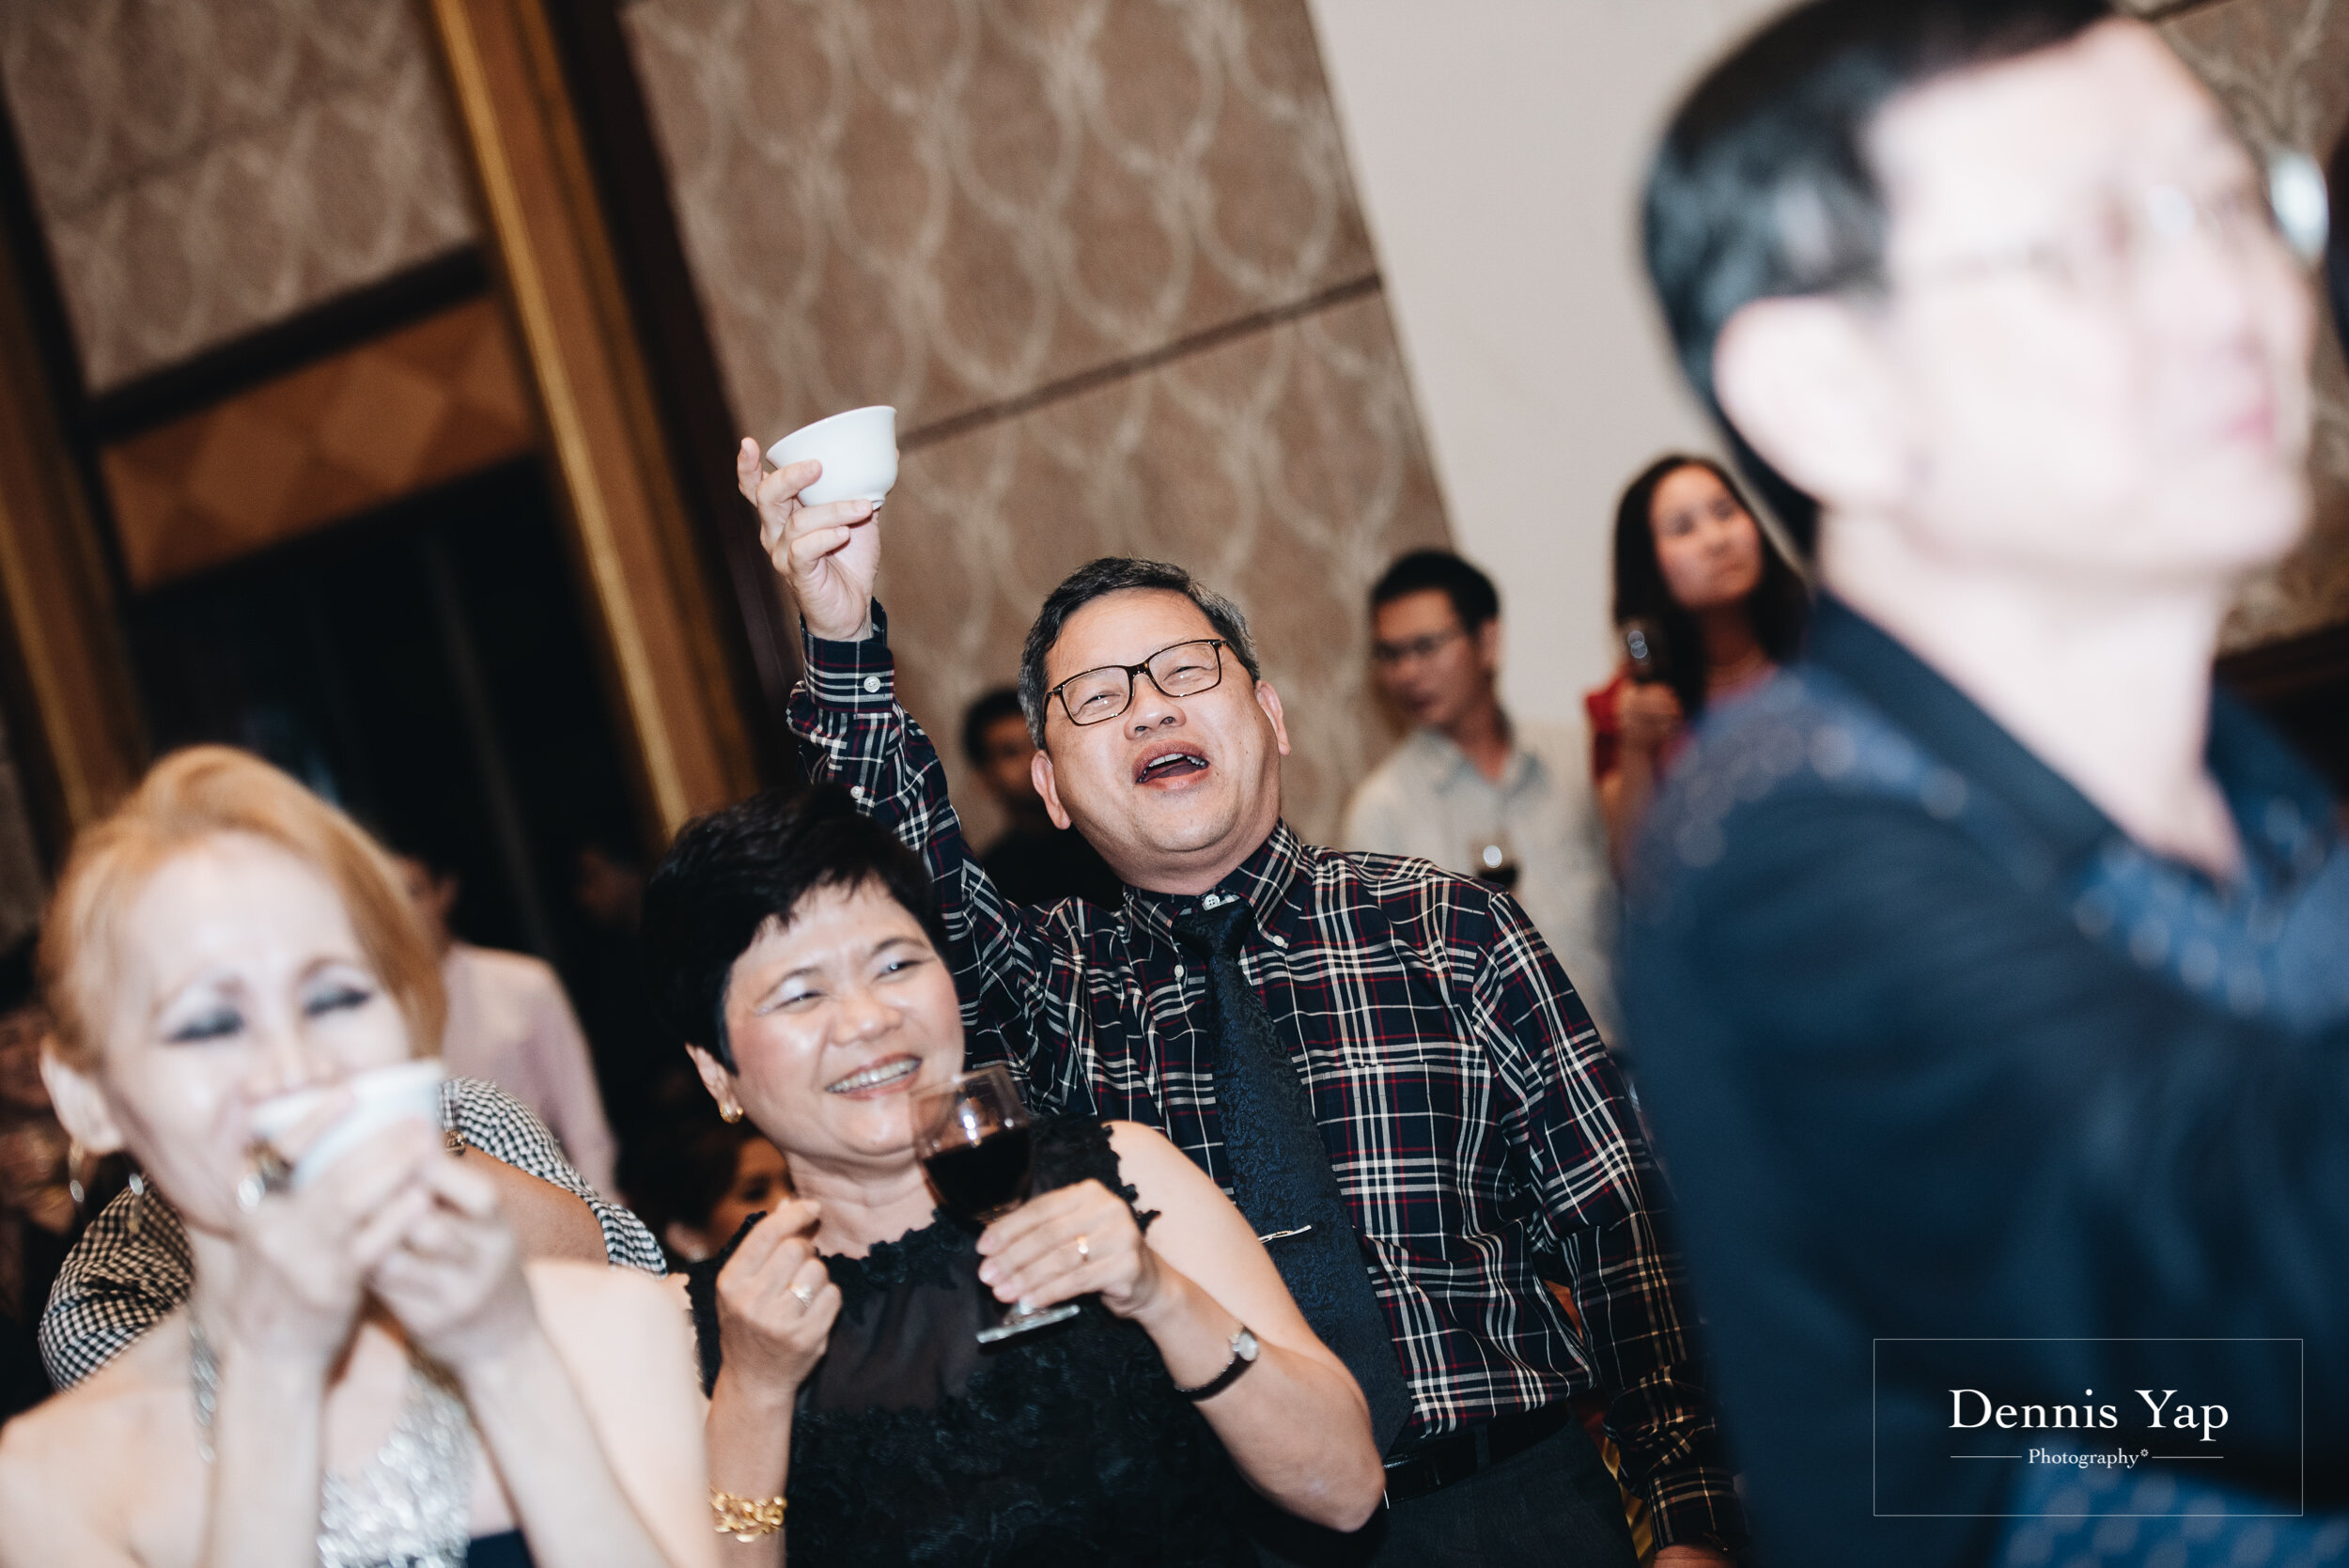 louis su yan wedding dinner dorsett grand subang dennis yap photography-123.jpg